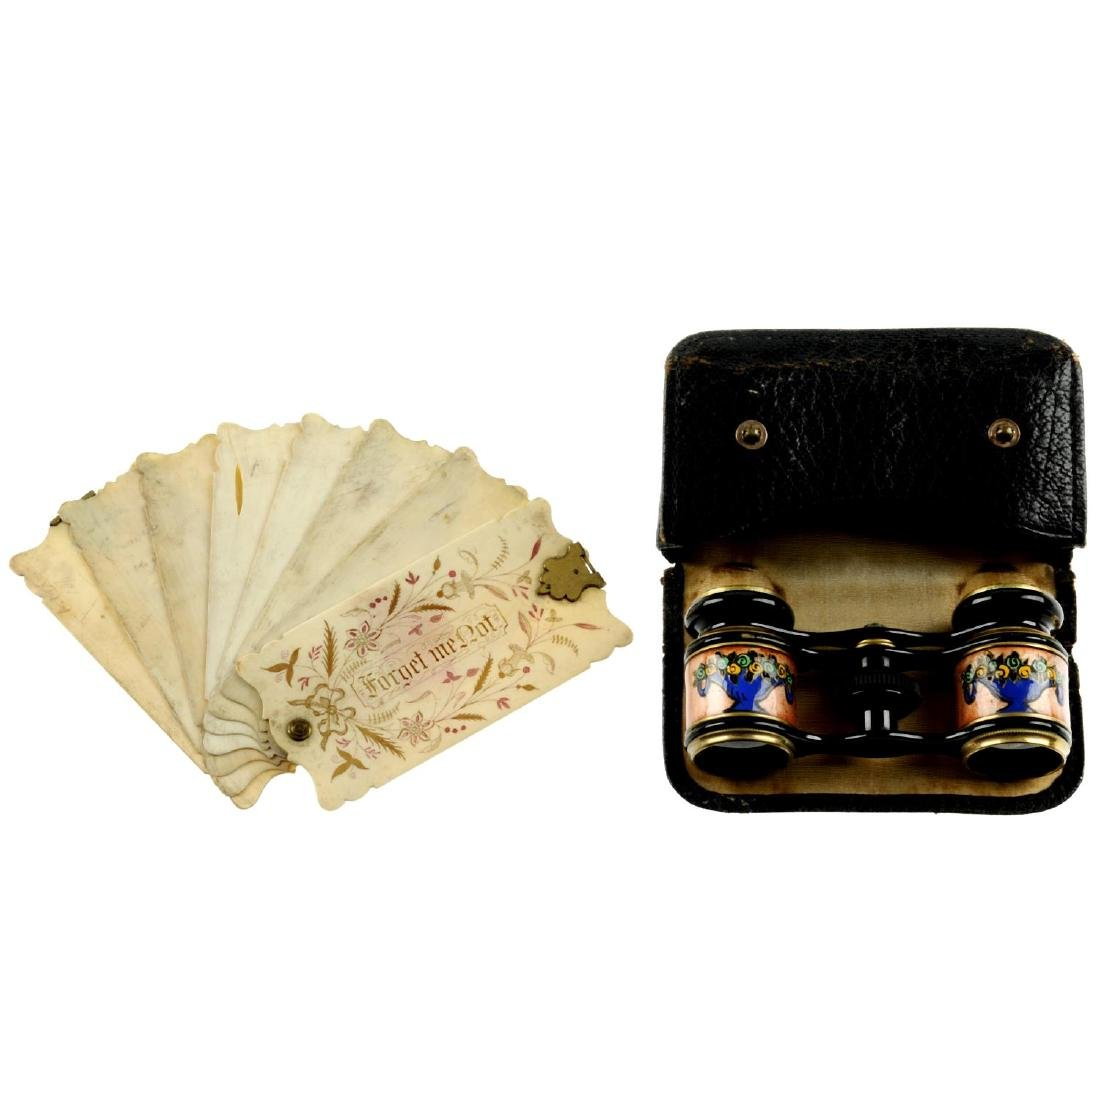 A selection of mainly early 20th century accessories.